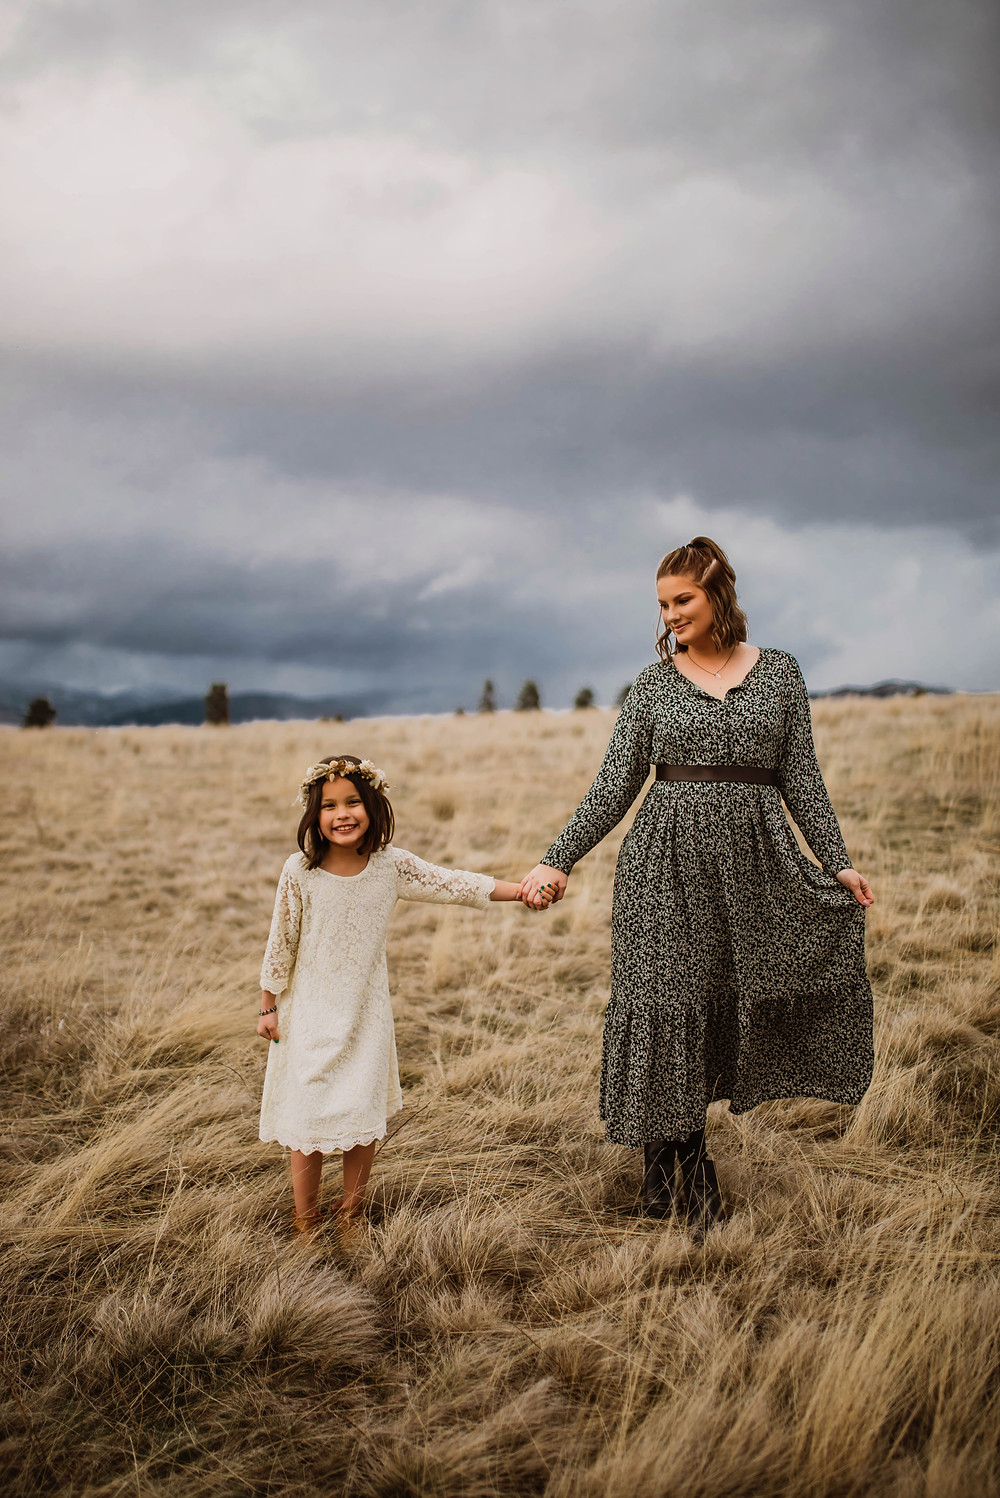 Infinite Photography and Film Missoula is hosting a Mother's Day mini session fundraiser to support the local Missoula YWCA for domestic abuse shelter. Infinite Photography and Film will be collaborating with Earth Within Girls and Earth Within Flowers.